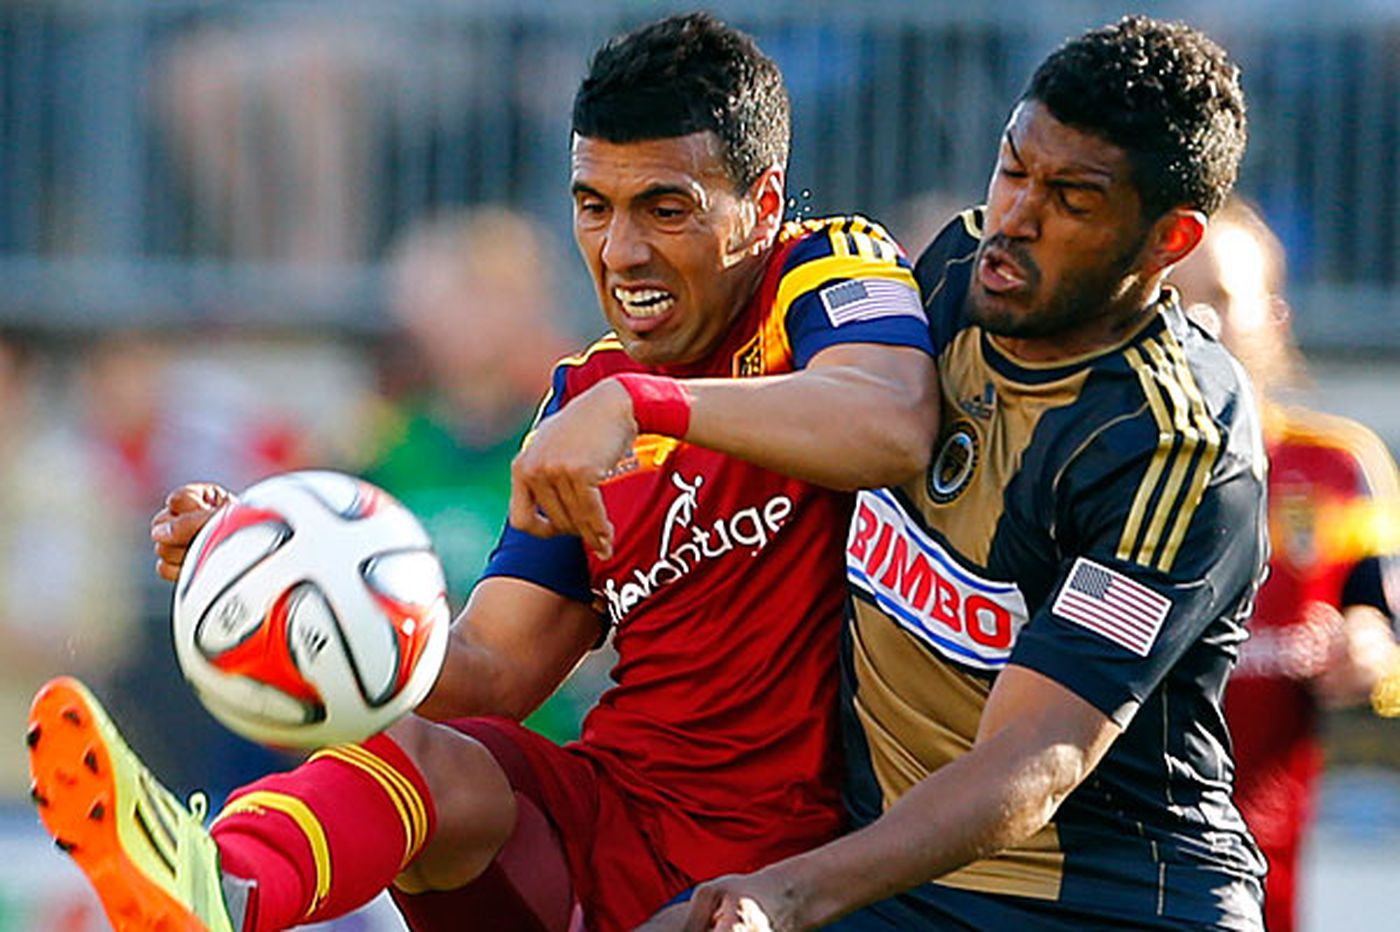 Union eyes win to complete tough stretch